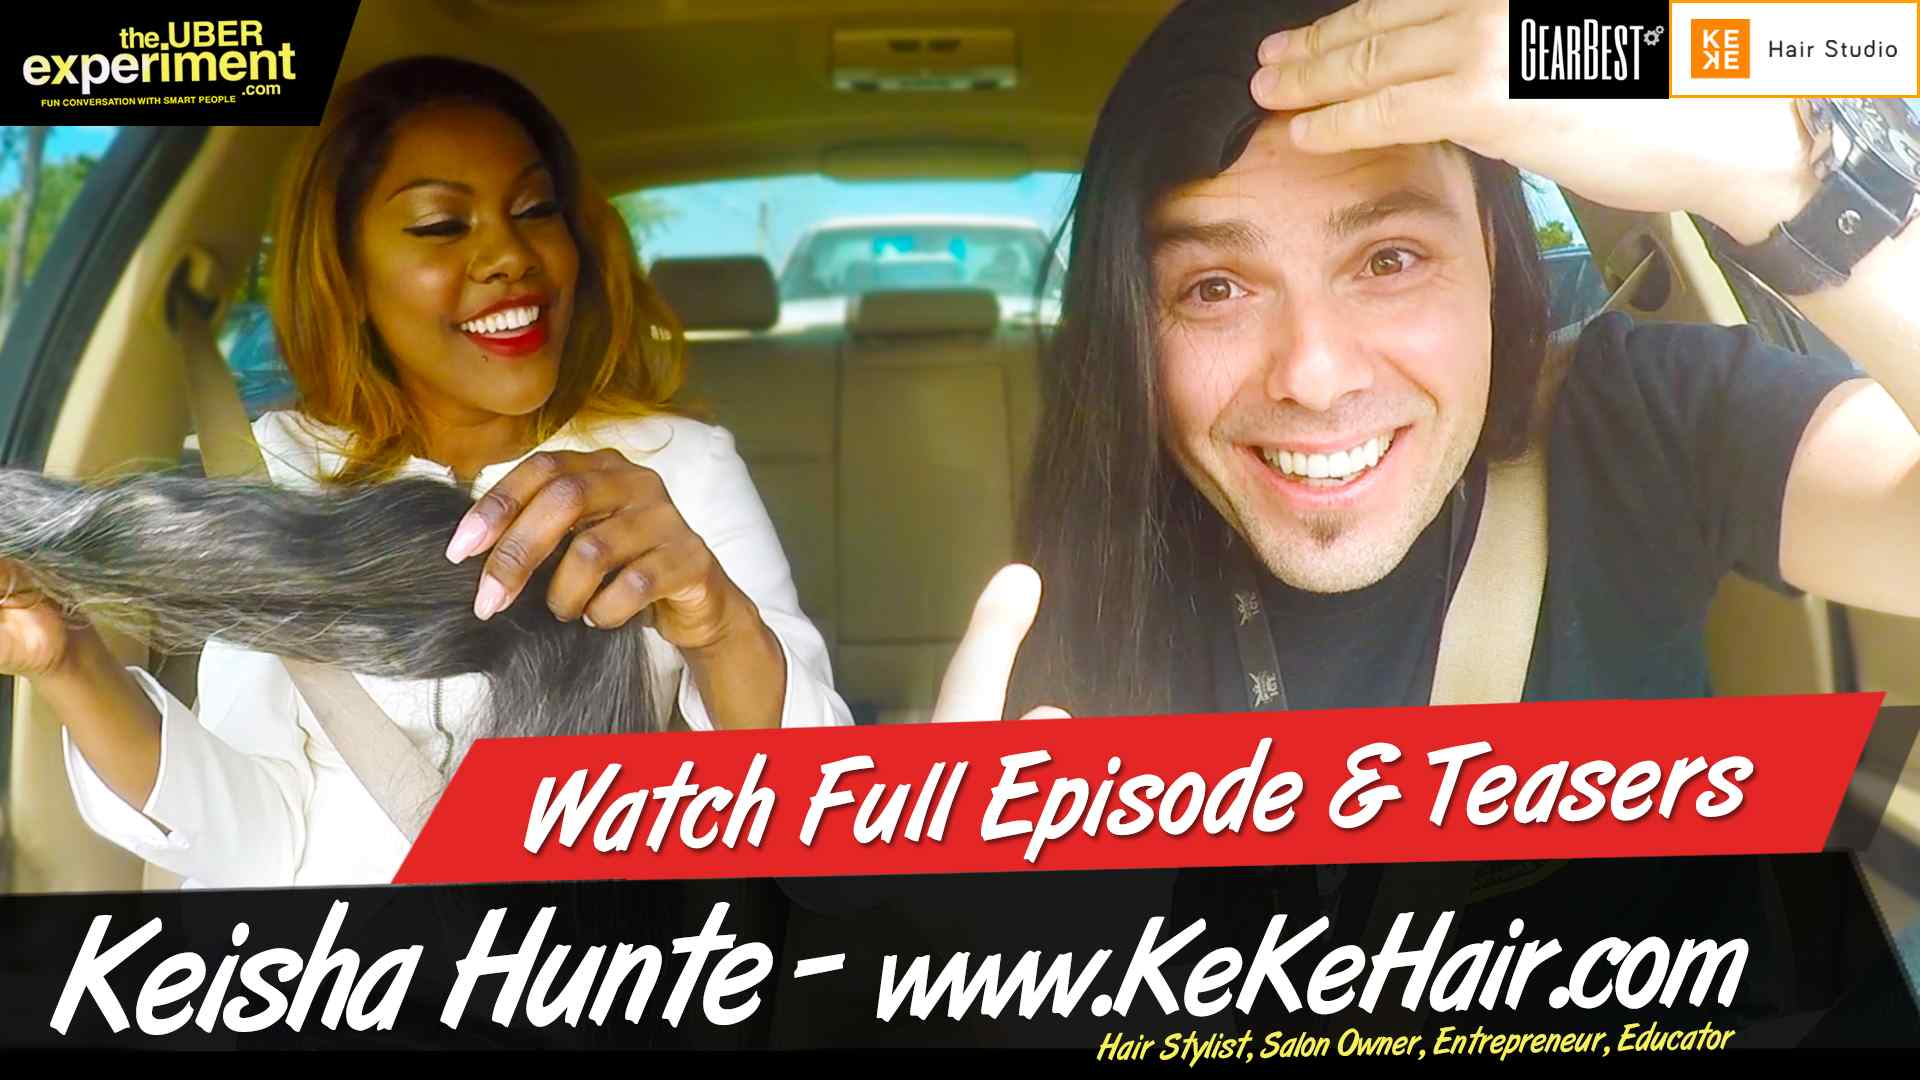 Toronto Womenpreneur & Celebrity Hairstylist Keisha Hunte of Kekehair.com gives Marcin Migdal a Hairy Education and a Hairier Makeover on The Uber Experiment